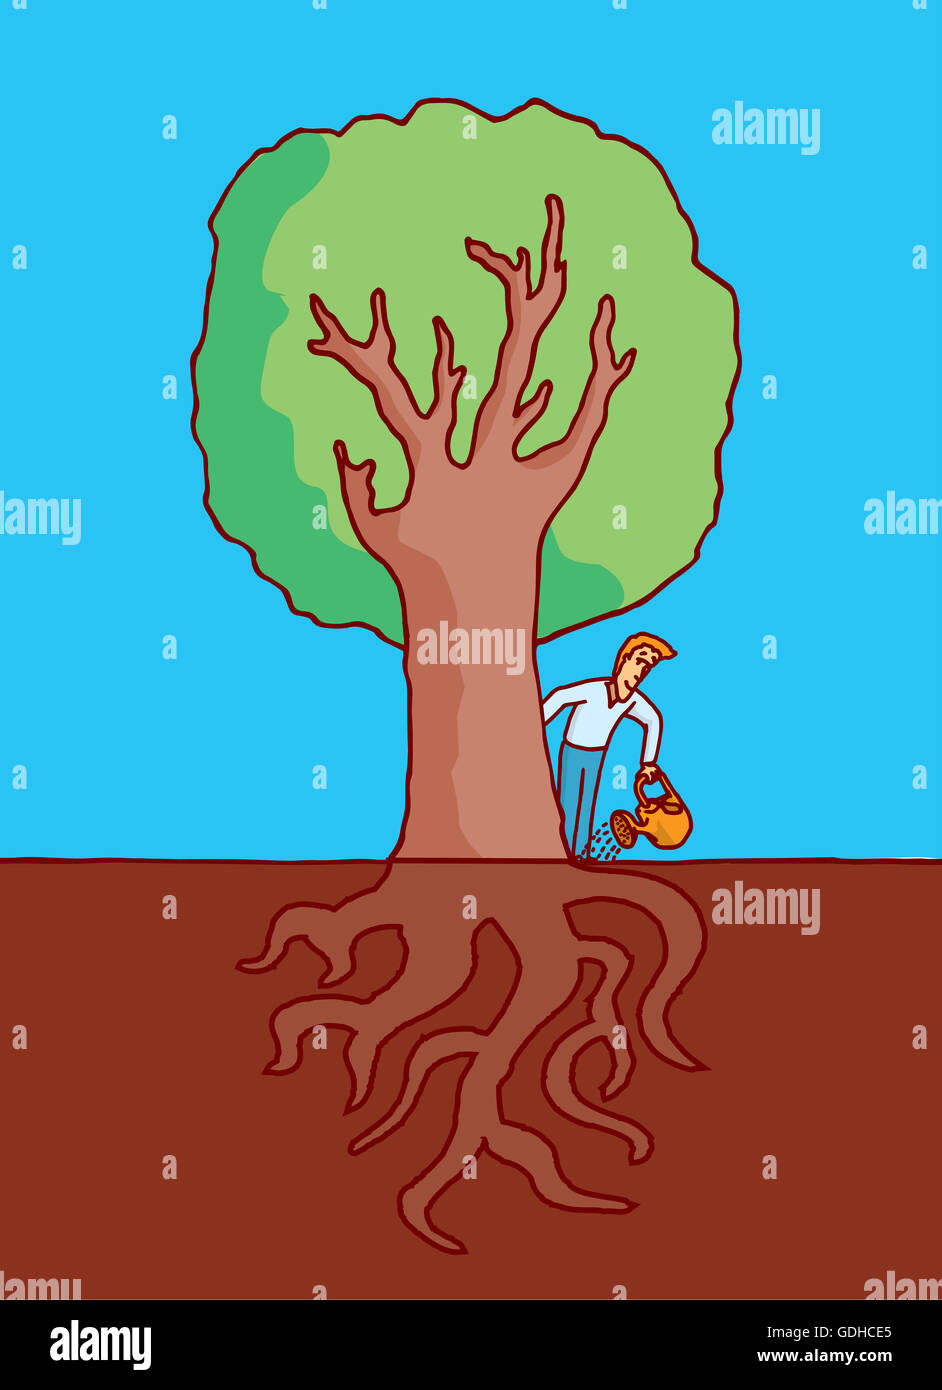 Cartoon Illustration Of Man Watering A Big Tree With Roots Under Stock Photo Alamy 50,000+ vectors, stock photos & psd files. https www alamy com stock photo cartoon illustration of man watering a big tree with roots under ground 111635725 html